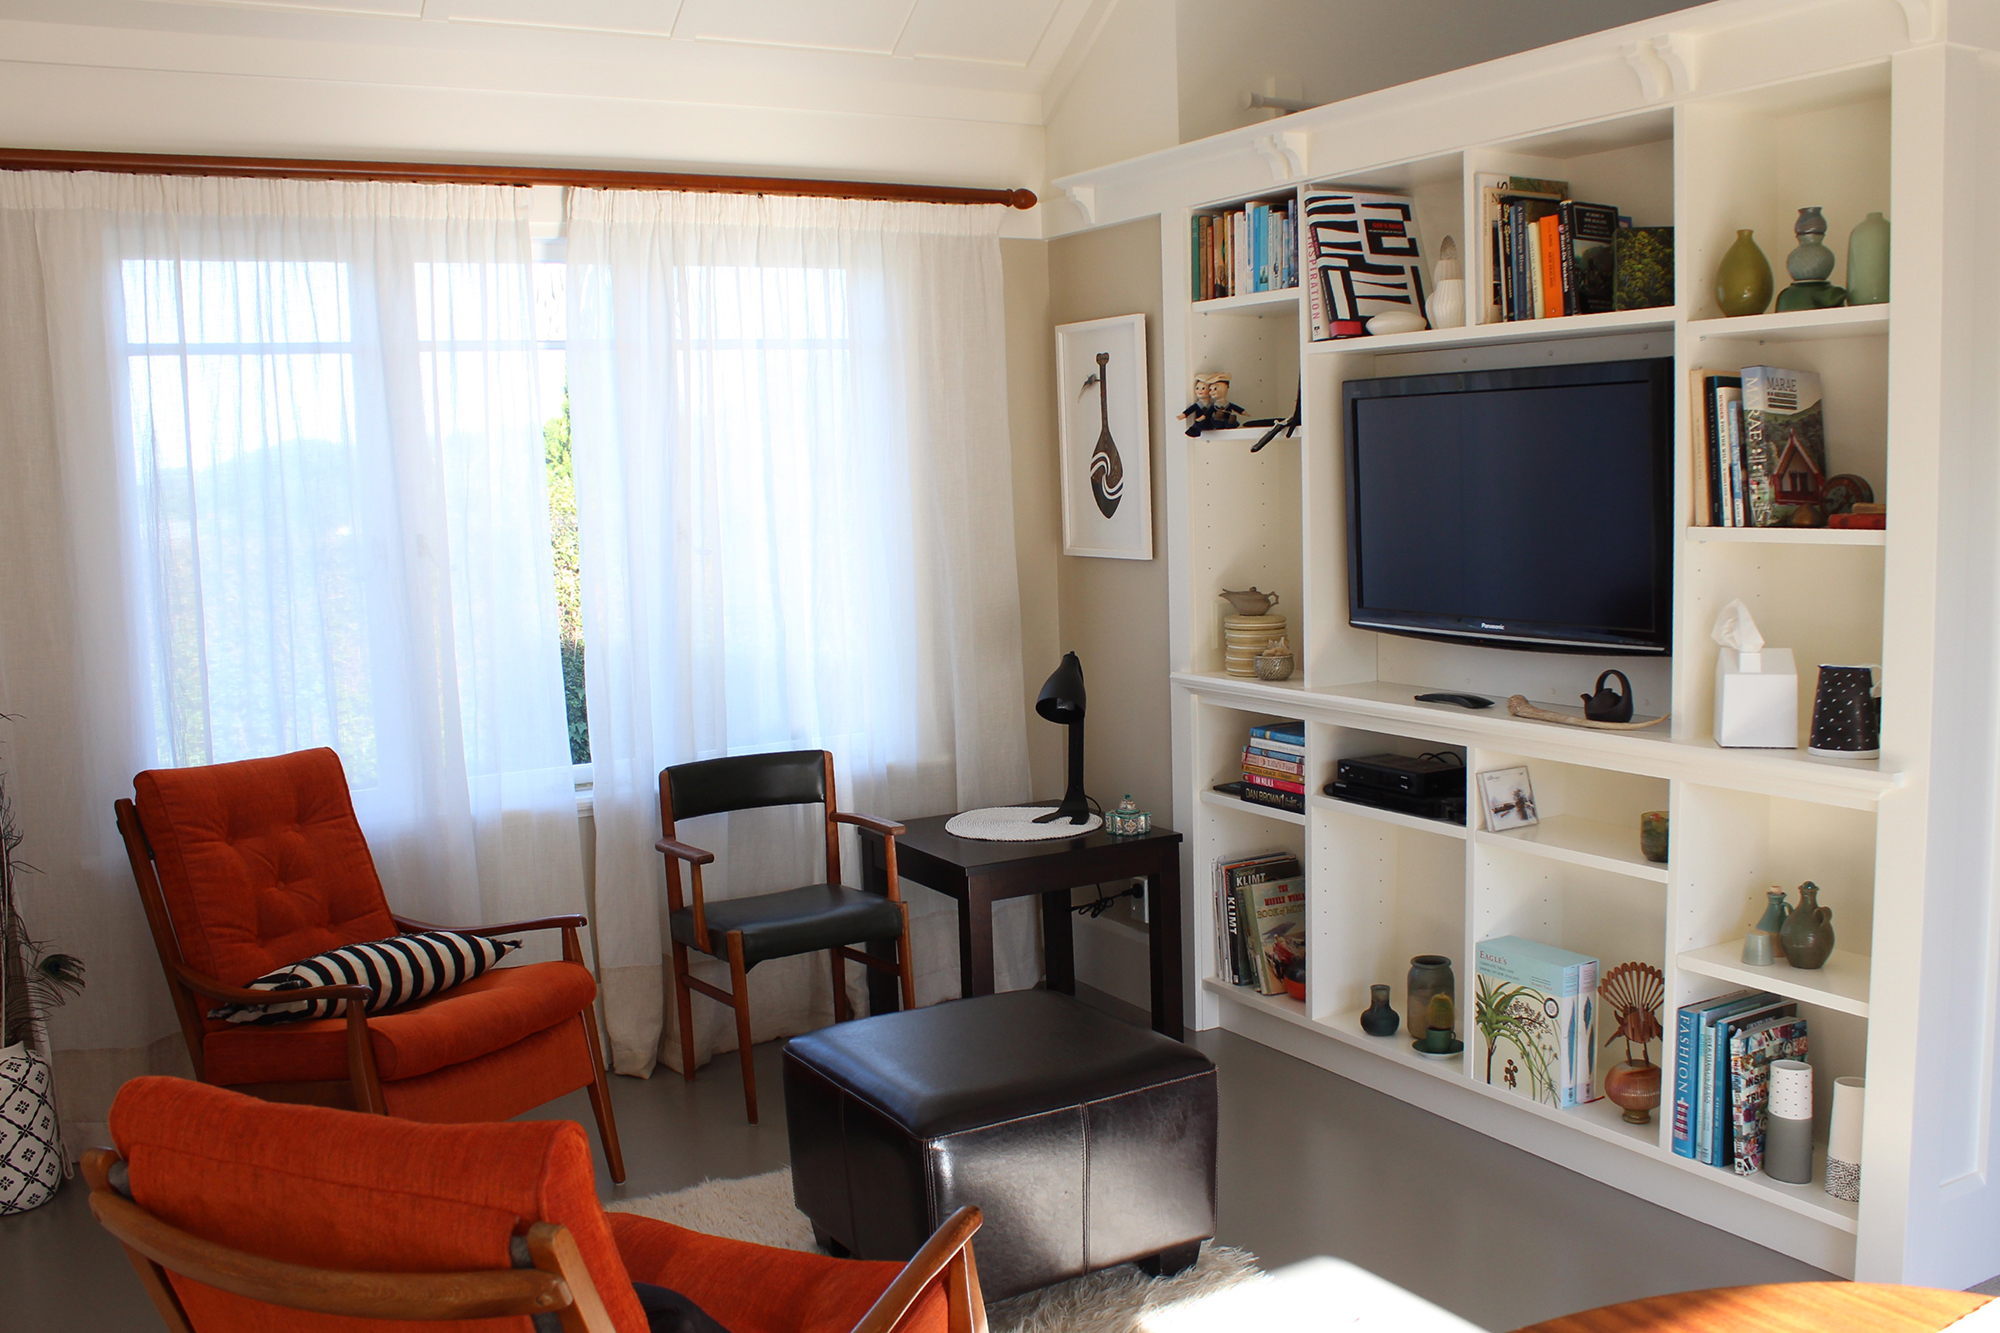 river-room-browns-boutique-bnb